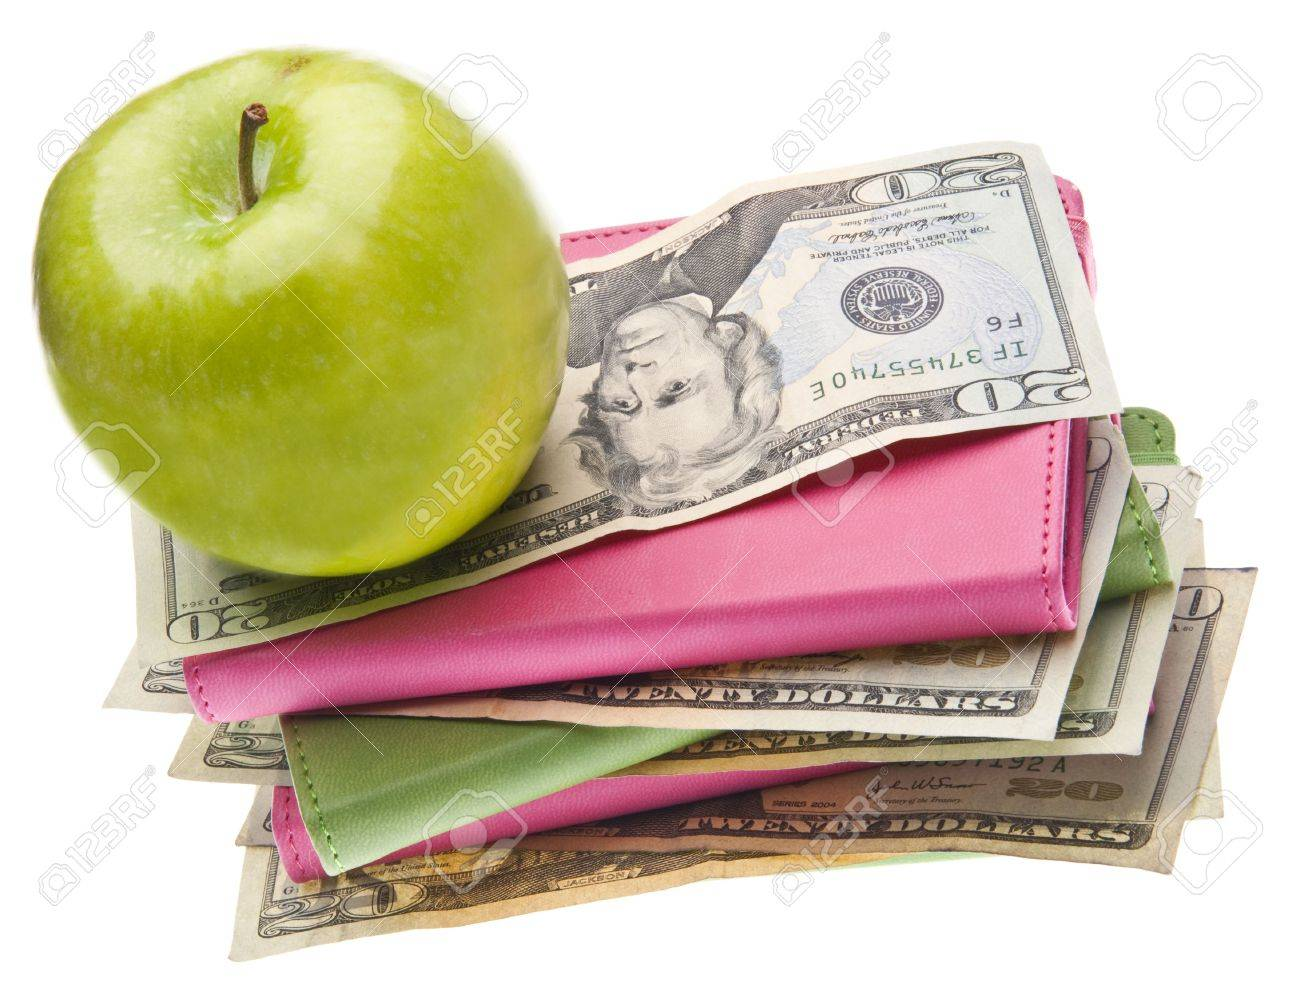 Apples, Books and Money for Health Care and Education Themed Images. Stock Photo - 6881552